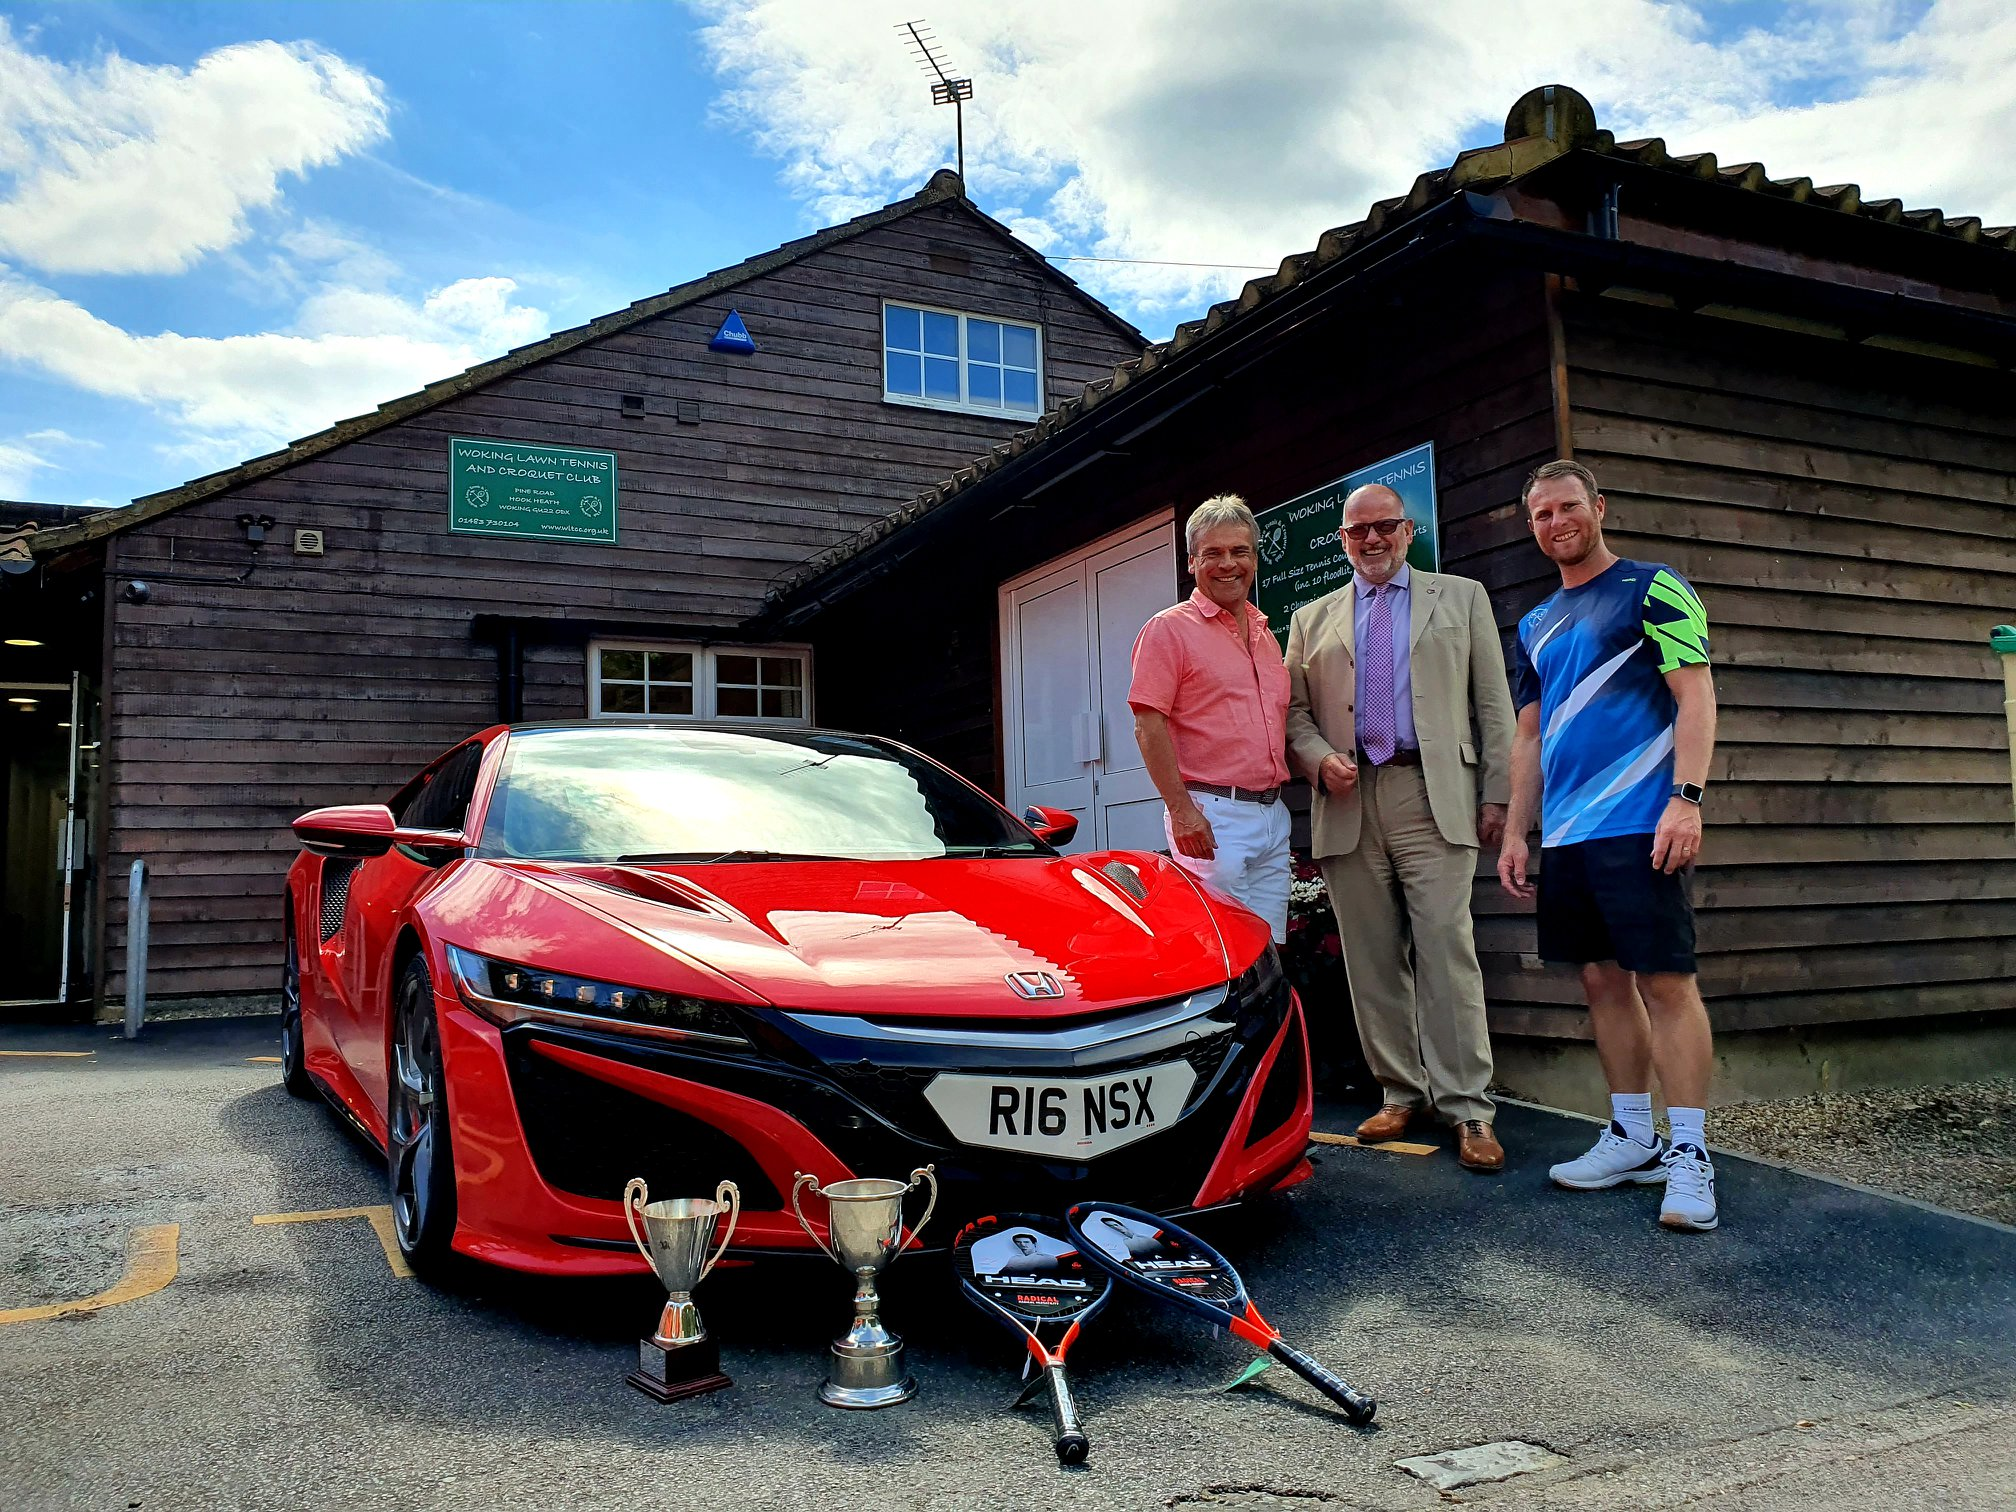 Richard Roberts of Trident Honda with Andrew Kirby and Matt Trevail from Woking LTCC